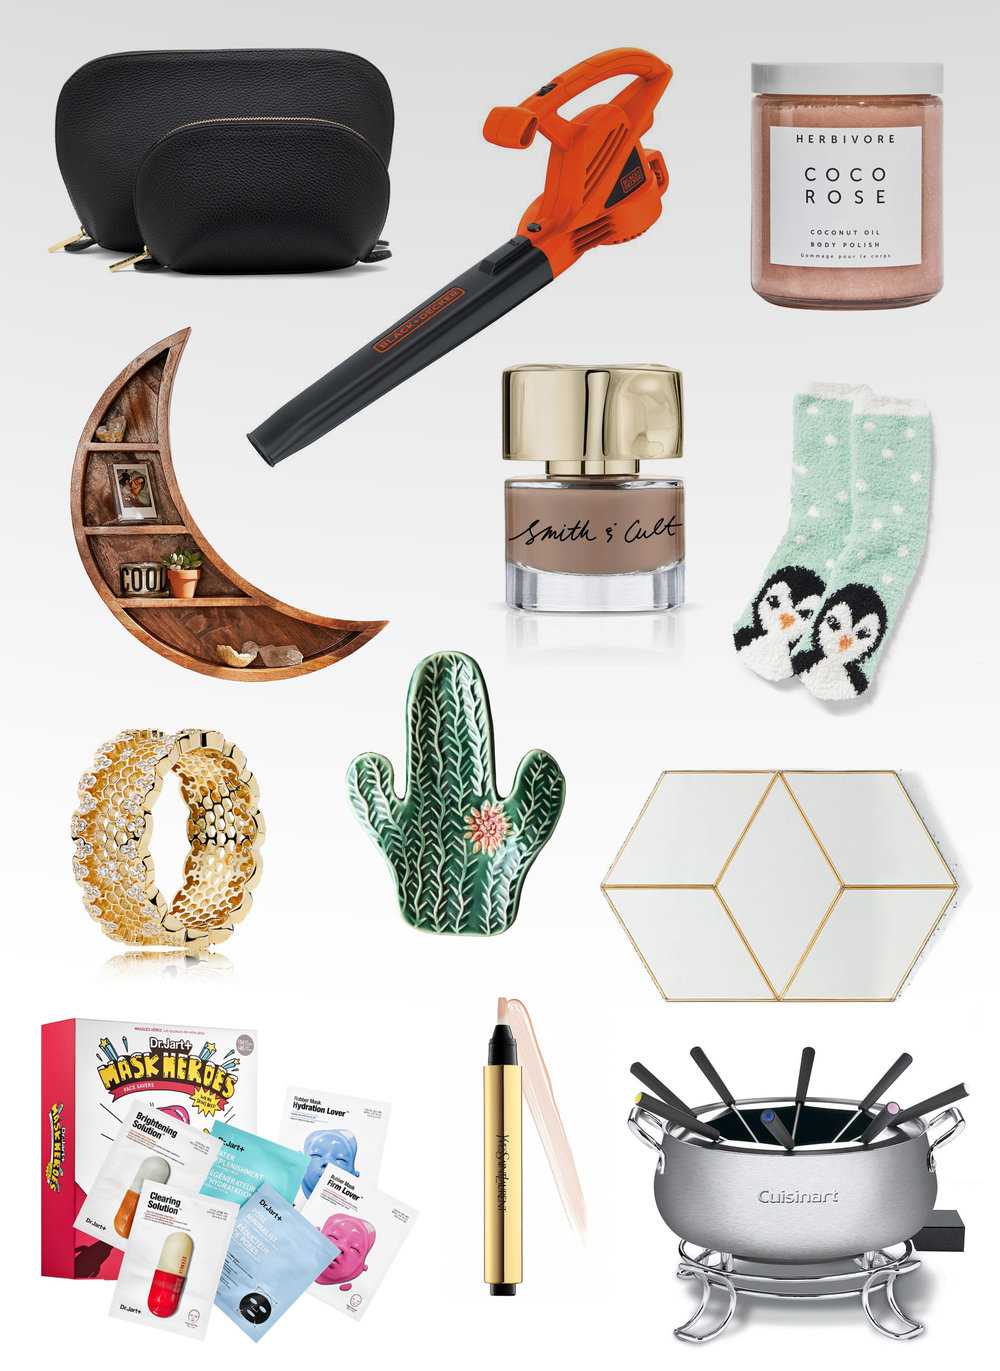 Maggie a la Mode - Wednesday Wish List Holiday Gifts for Everyone - Cuyana Leather Travel Case Set, Black & Decker LB700 7-Amp Corded Leaf Blower, Herbivore Botanicals Coco Rose Coconut Oil Body Polish, Urban Outfitters Crescent Moon Wall Shelf, Smith & Cult Nail Lacquer Honey Hush, Old Navy Printed Cozy Fuzzy Socks, Pandora Honeycomb Lace Ring, Etsy BackBayPottery Cactus Succulent Spoon Rest, Anthropologie Estella Wall Mirror, Dr. Jart+ Mask Heroes Face Savers, Yves Saint Laurent  TOUCHE ECLAT Radiance Perfecting Pen, Cuisinart CFO-3SS Electric Fondue Maker